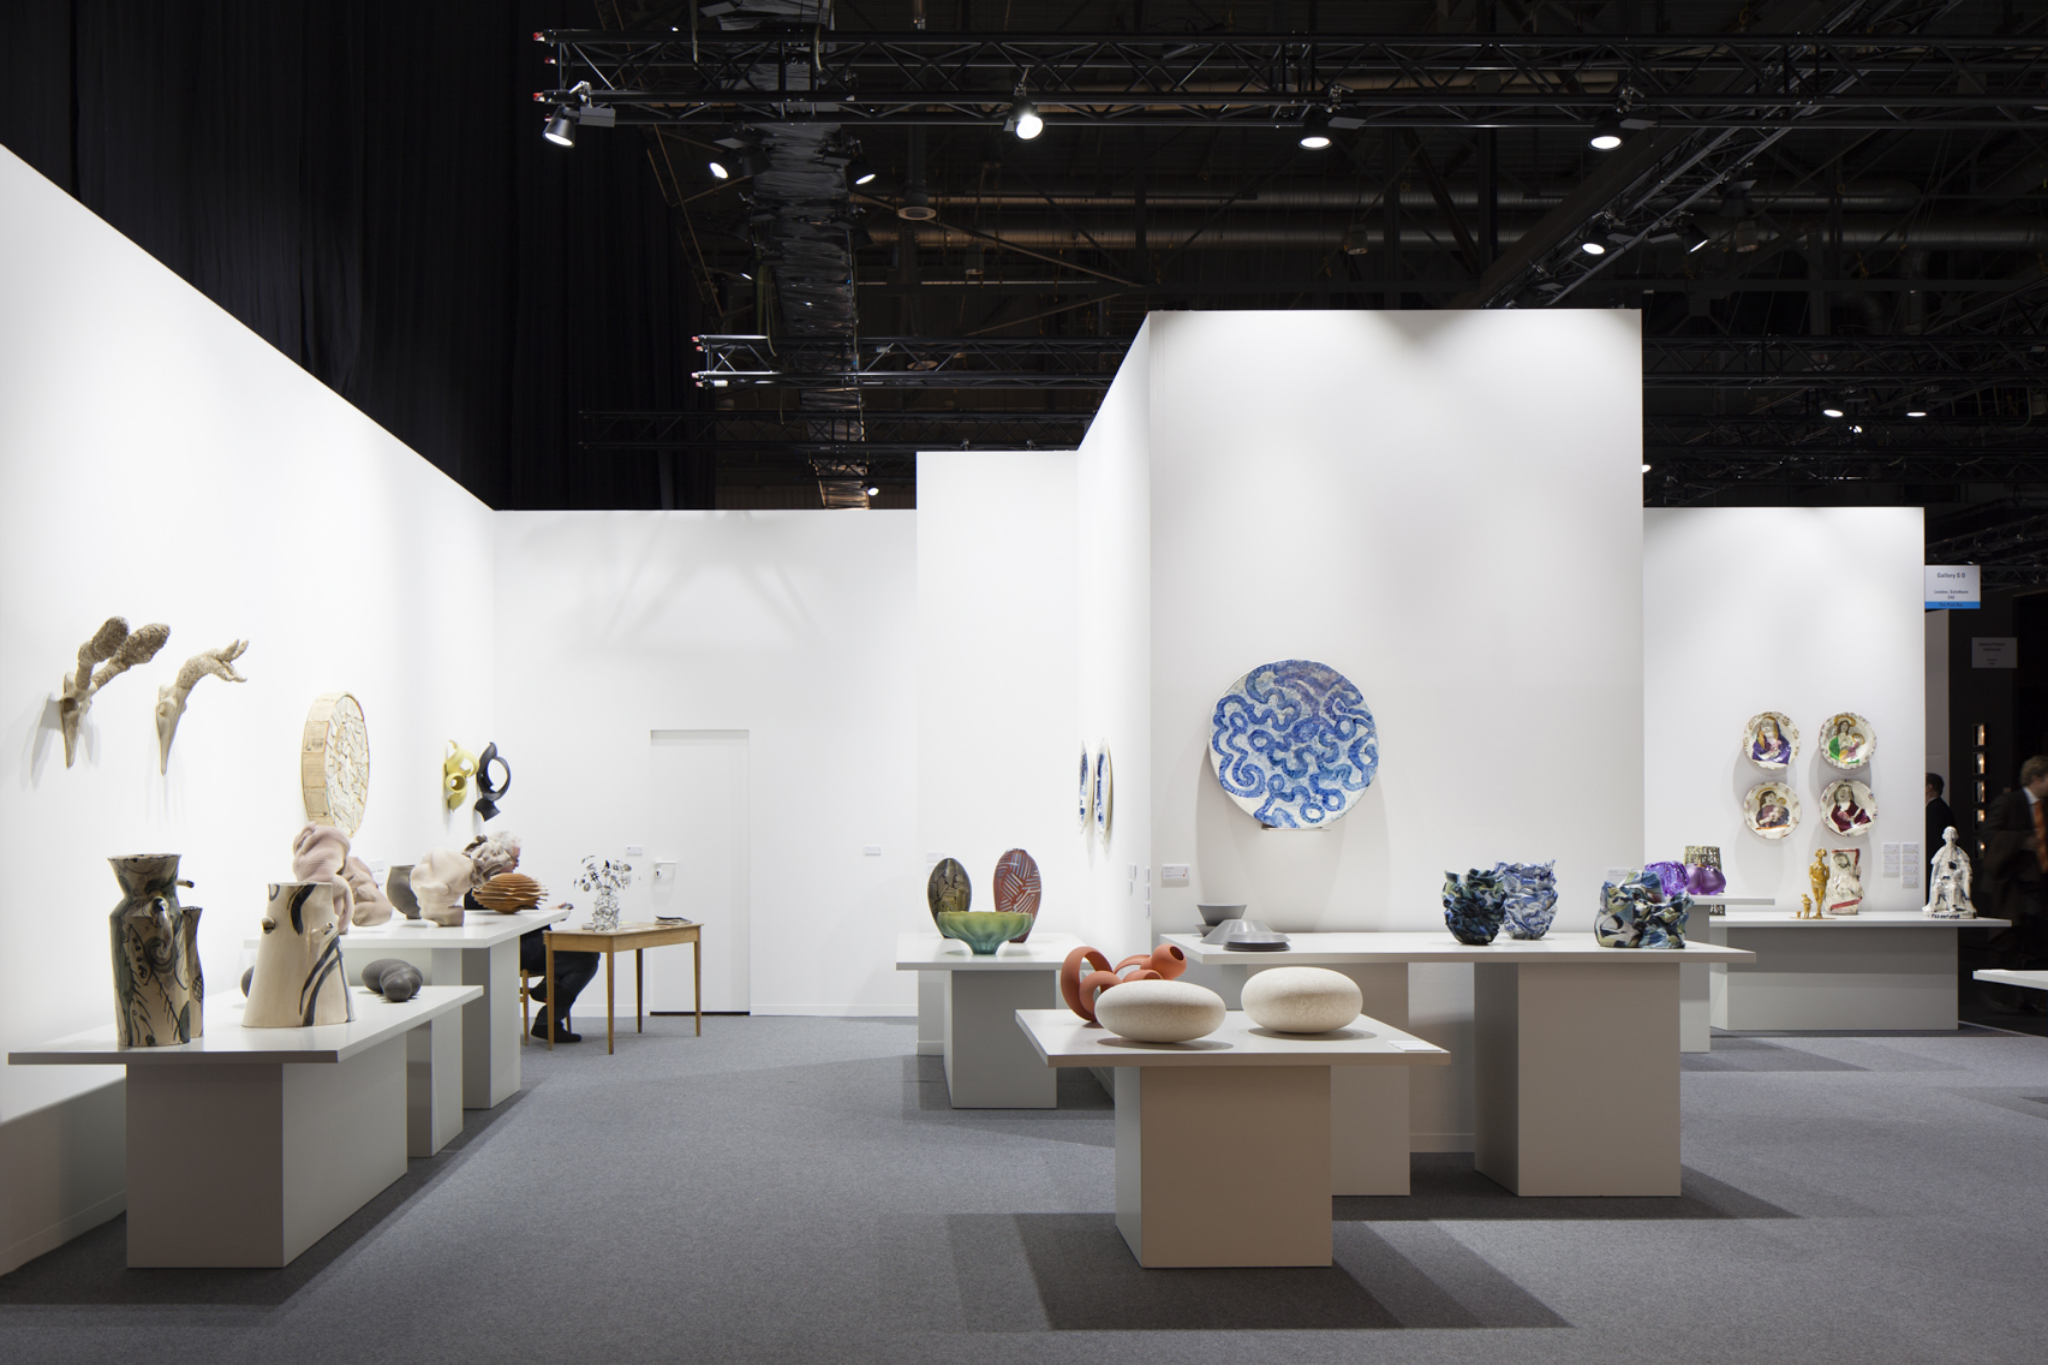 Our stand at artgeneve 2016